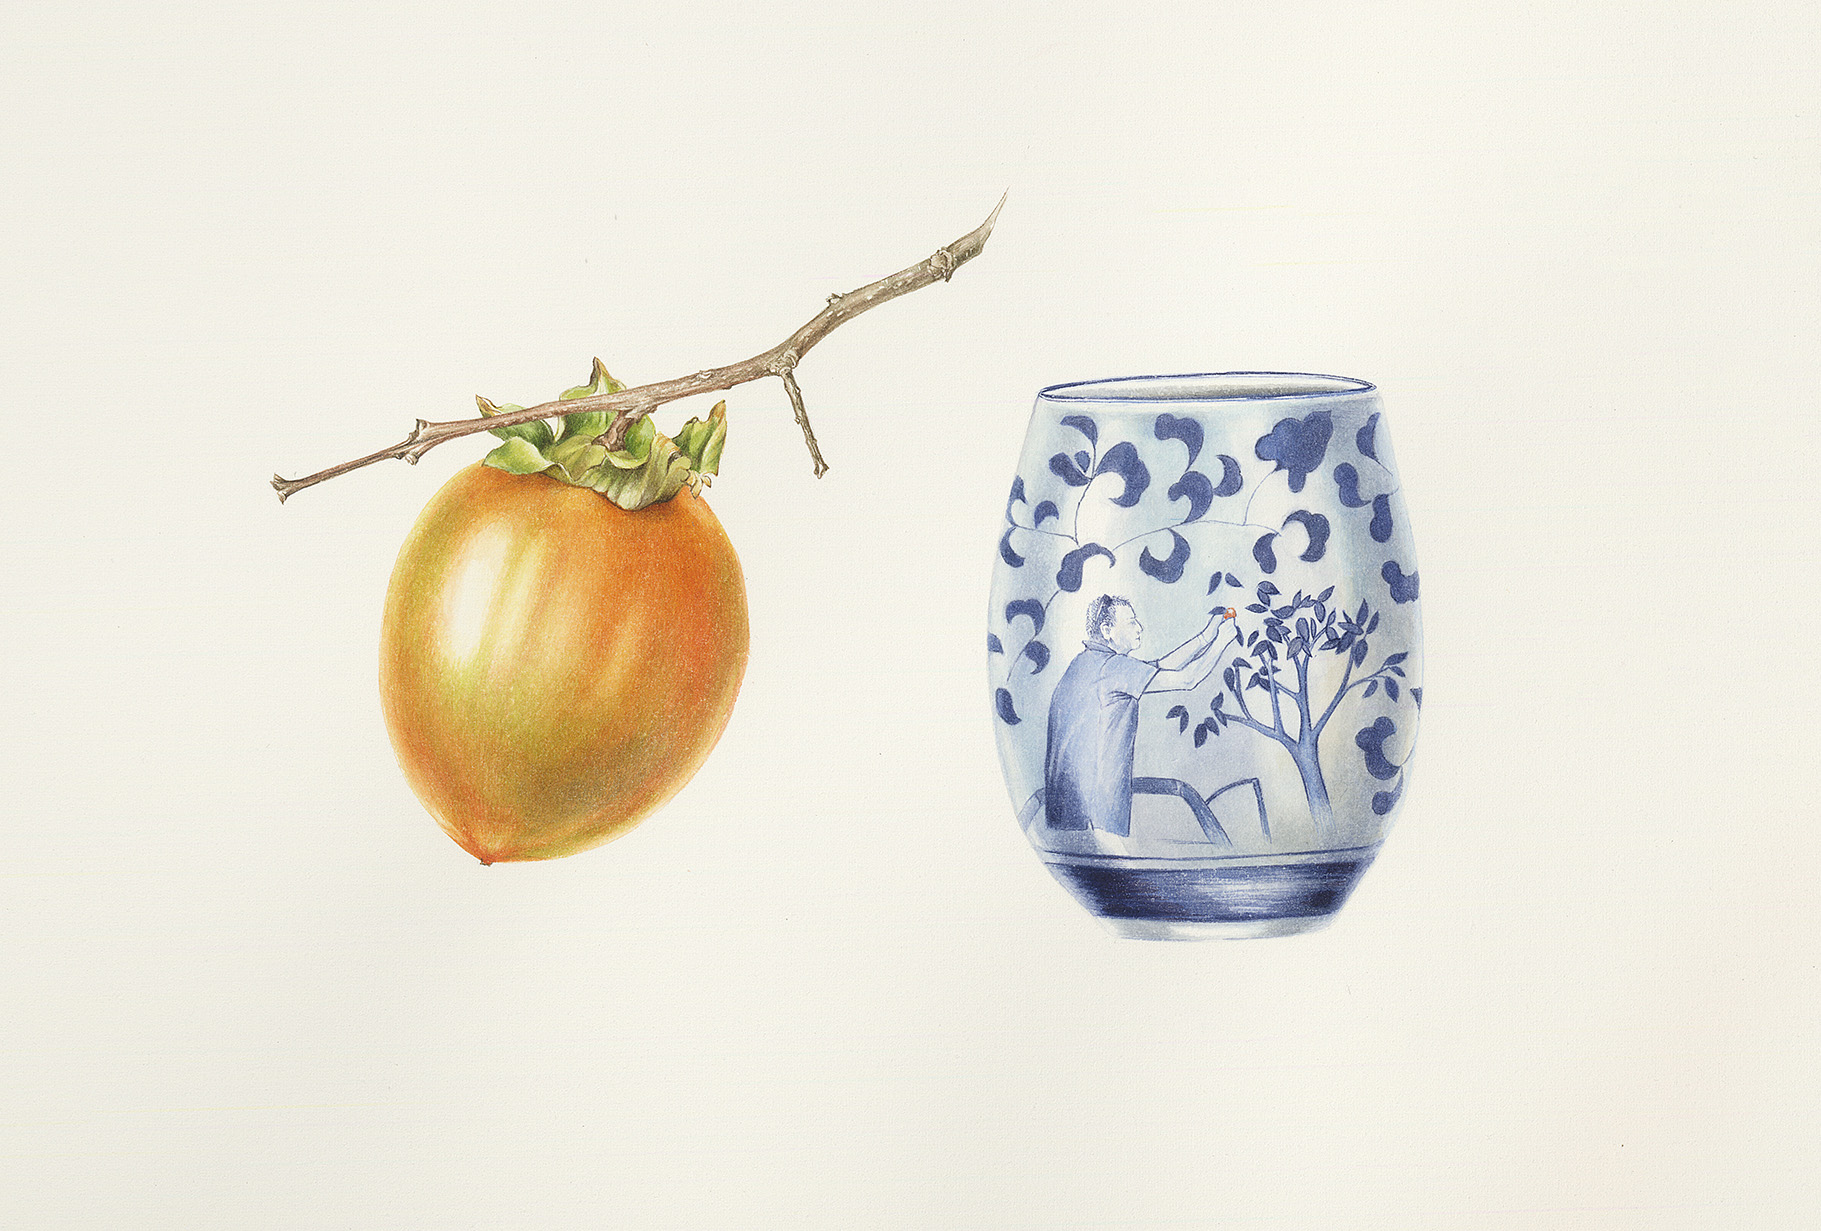 Persimmon and cup